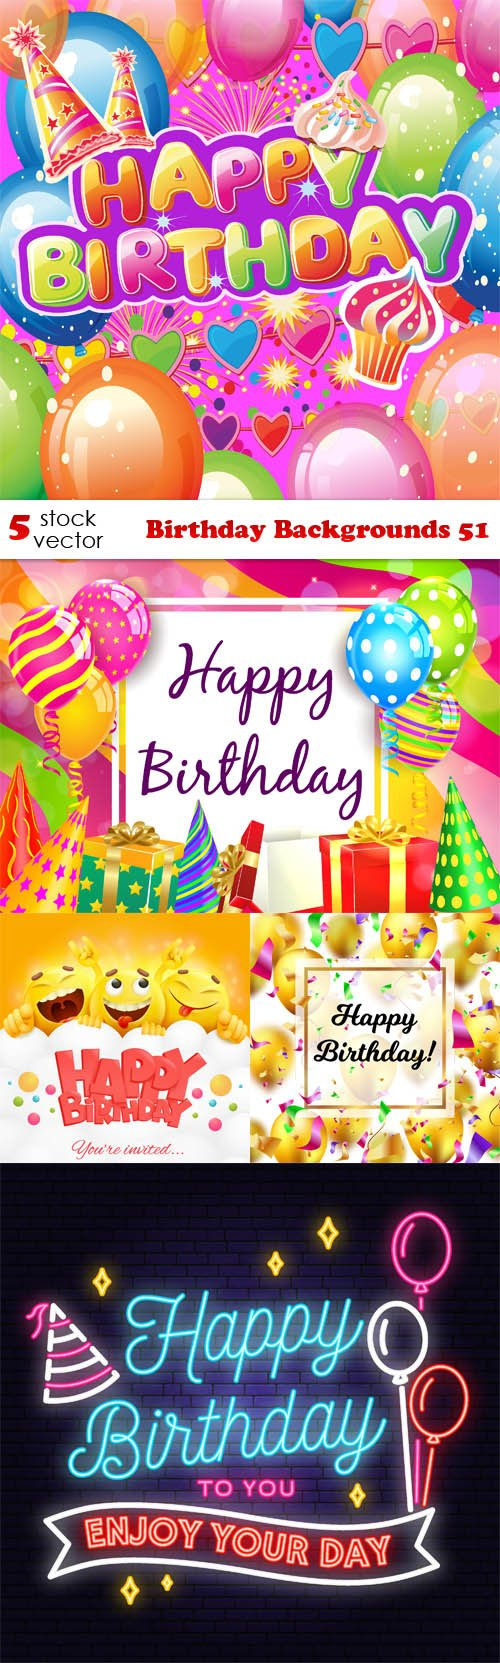 Vectors - Birthday Backgrounds 51